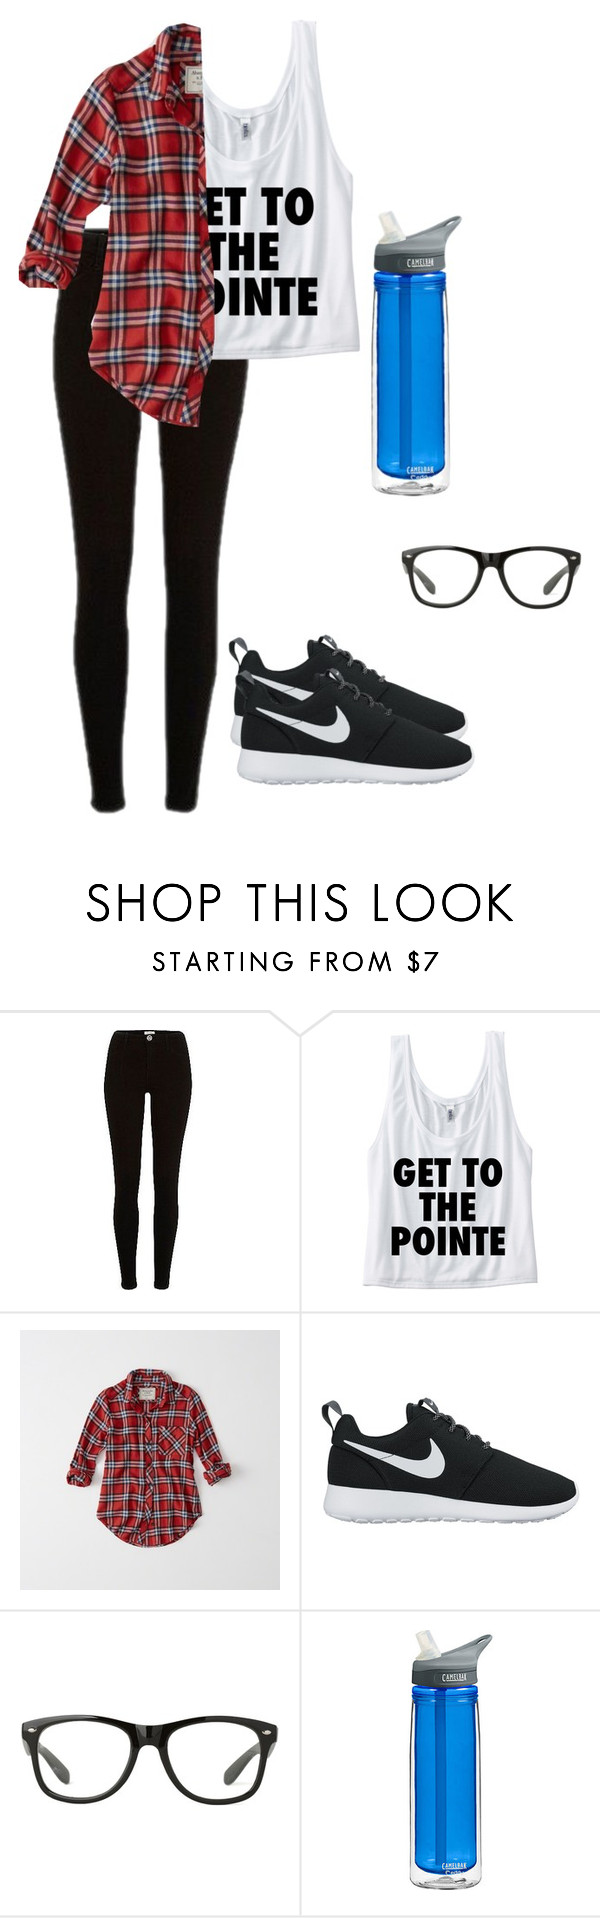 """Abbey"" by shoppingismycardio99 ❤ liked on Polyvore featuring River Island, Abercrombie & Fitch and NIKE"